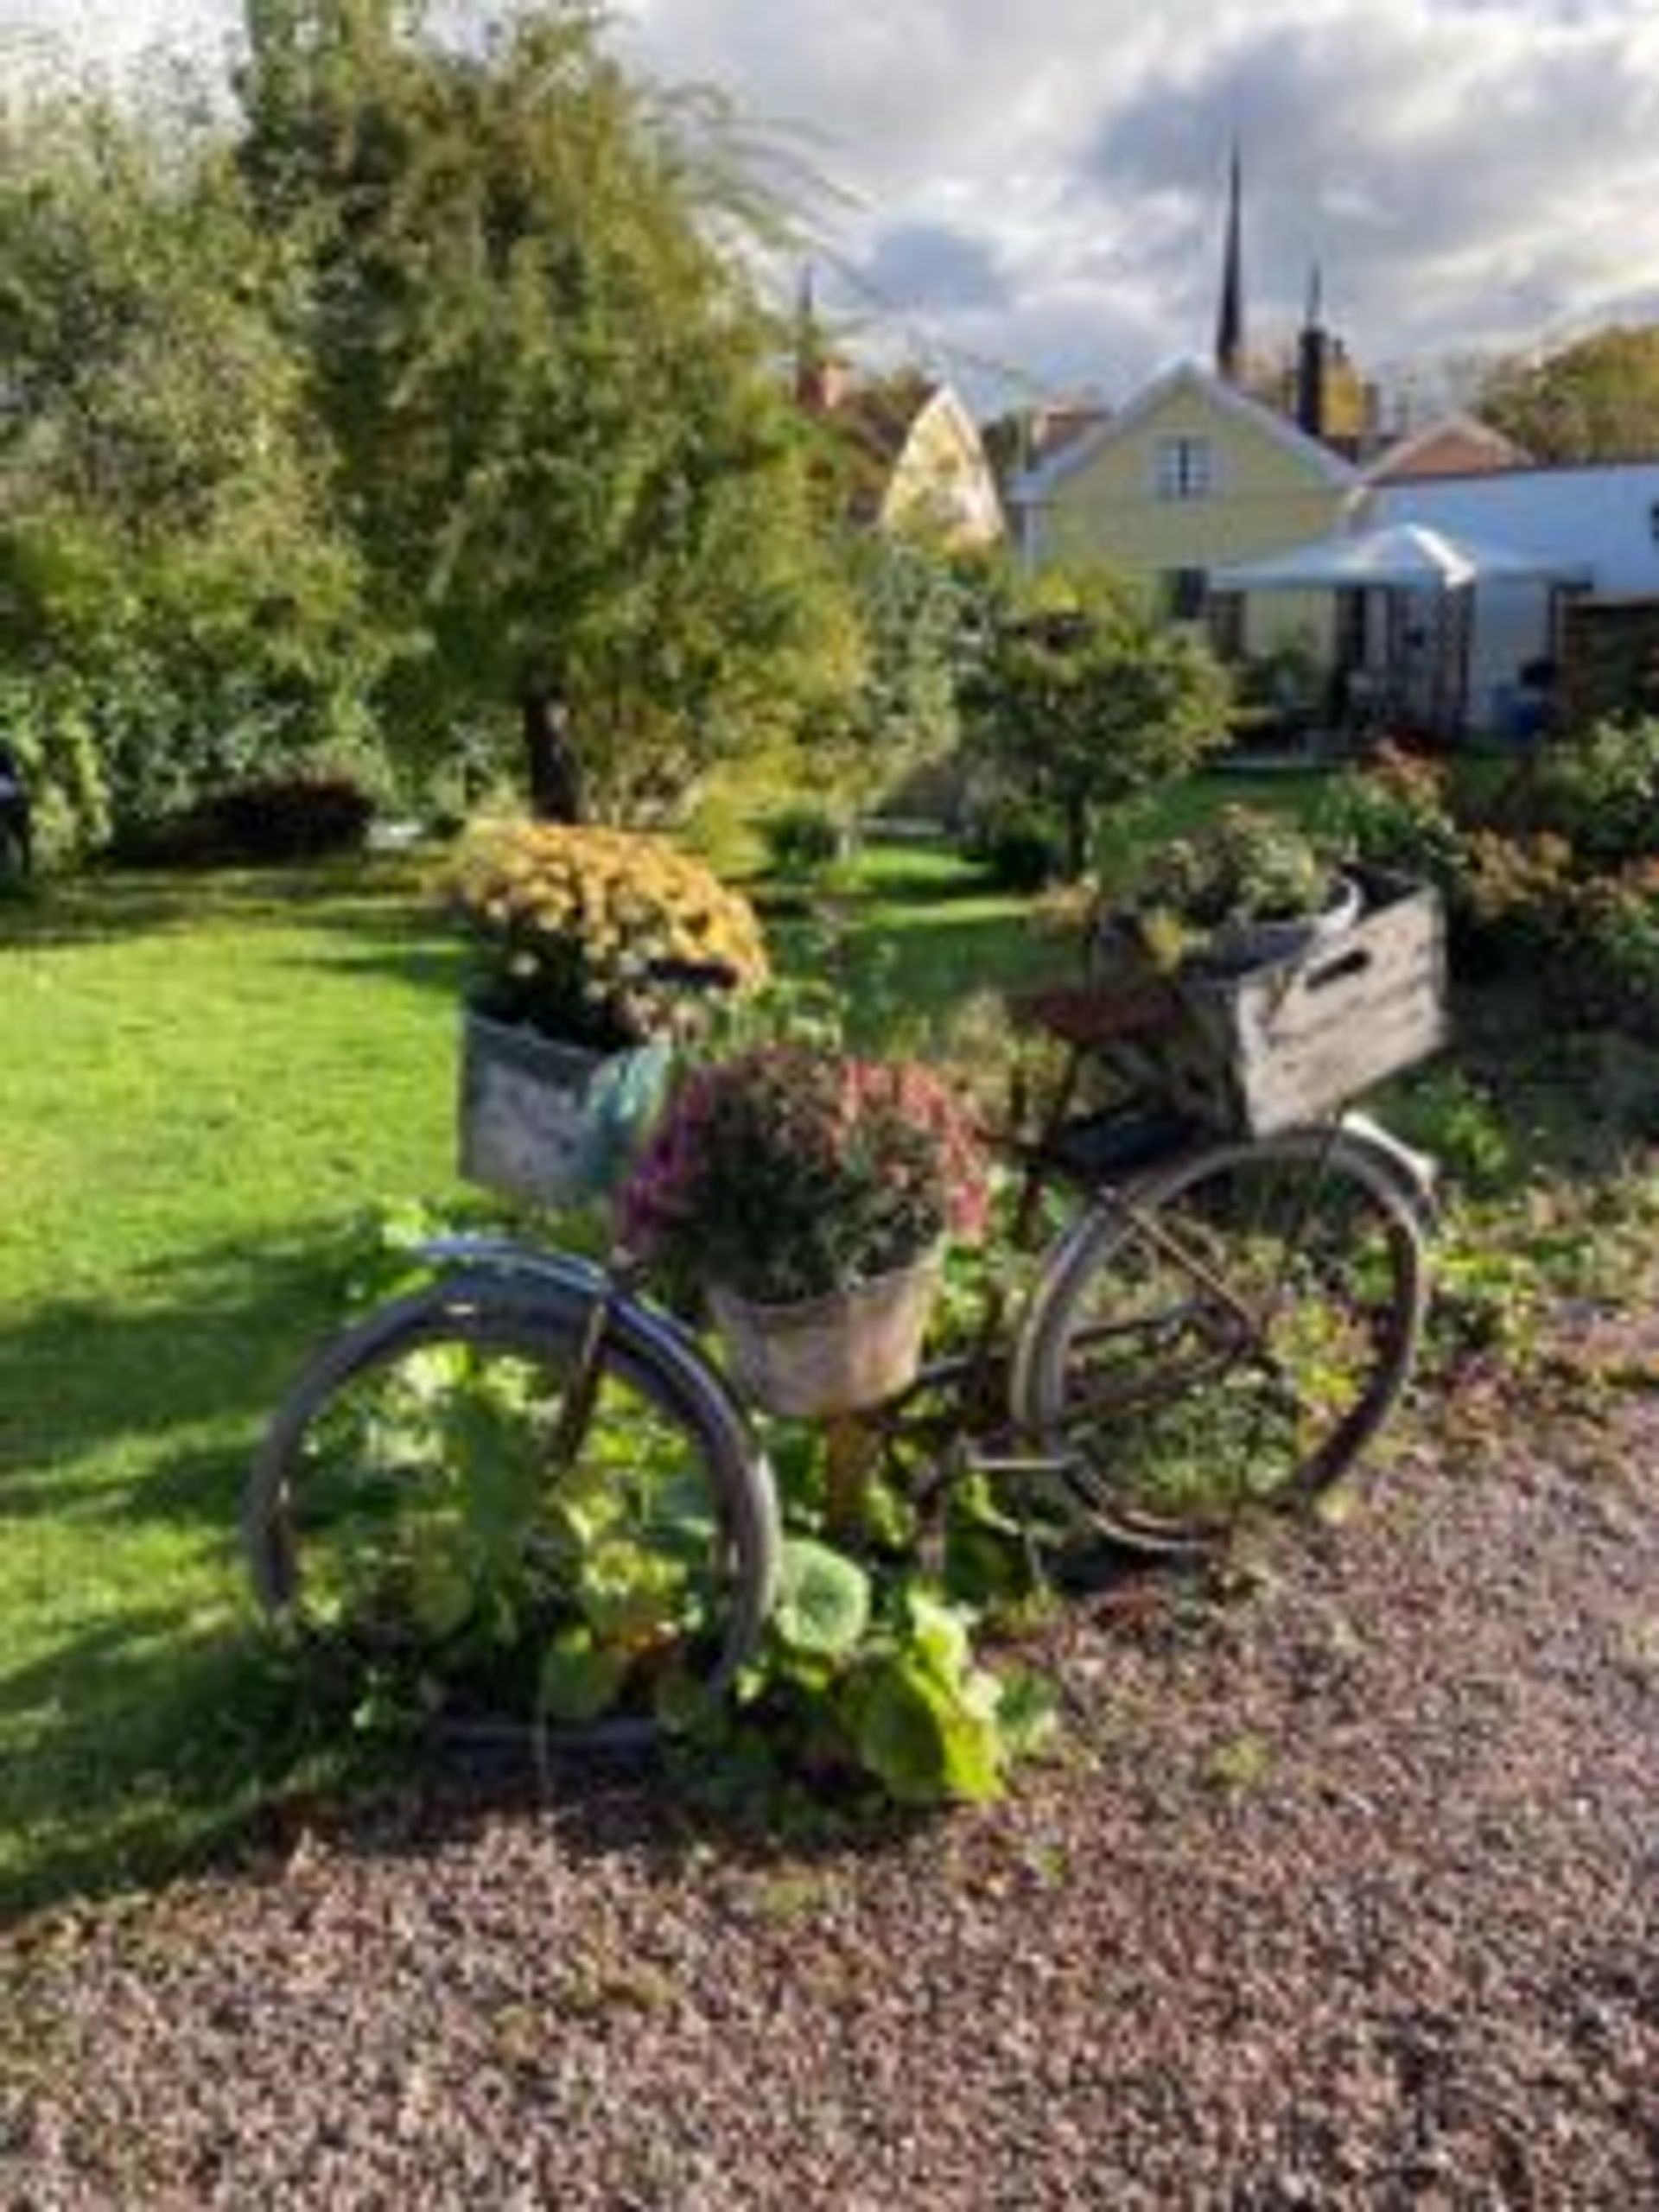 A bicycle used as a decoration in a garden.